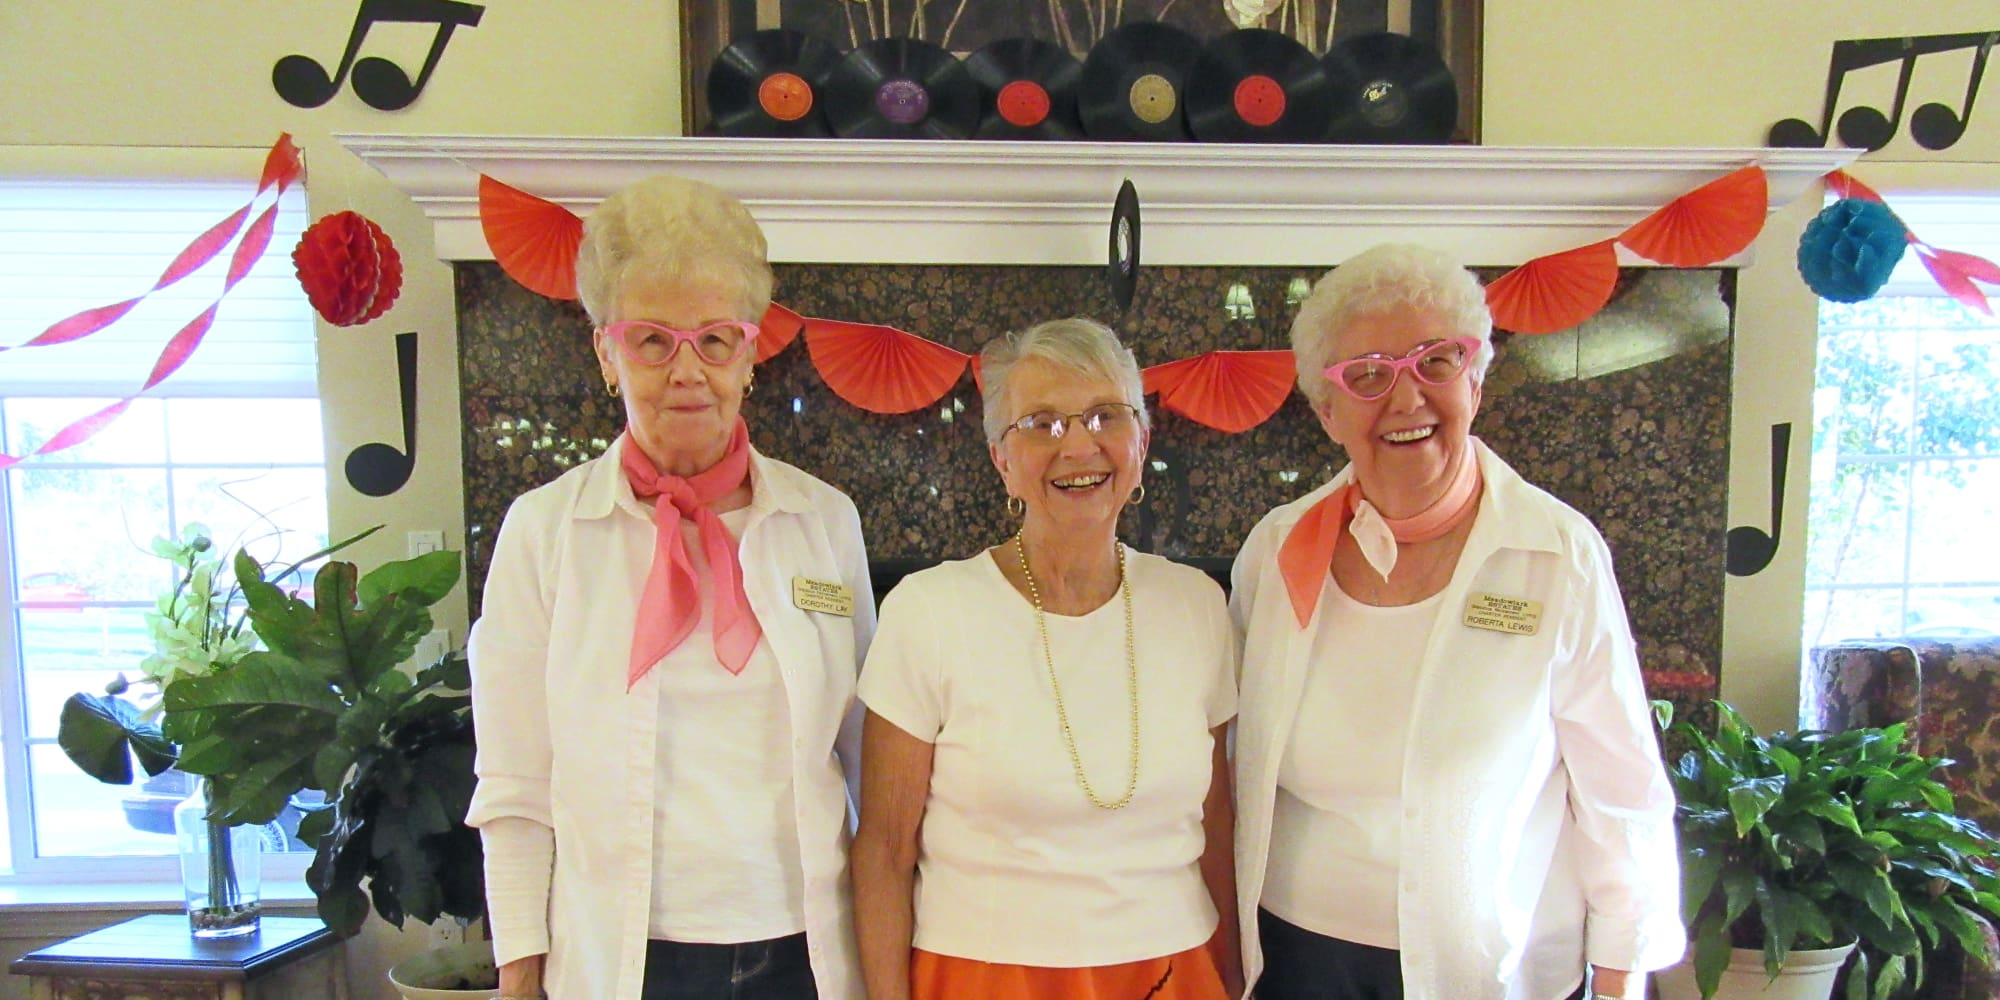 Three residents dressed up for a themed day at Meadowlark Estates Gracious Retirement Living in Lawrence, Kansas